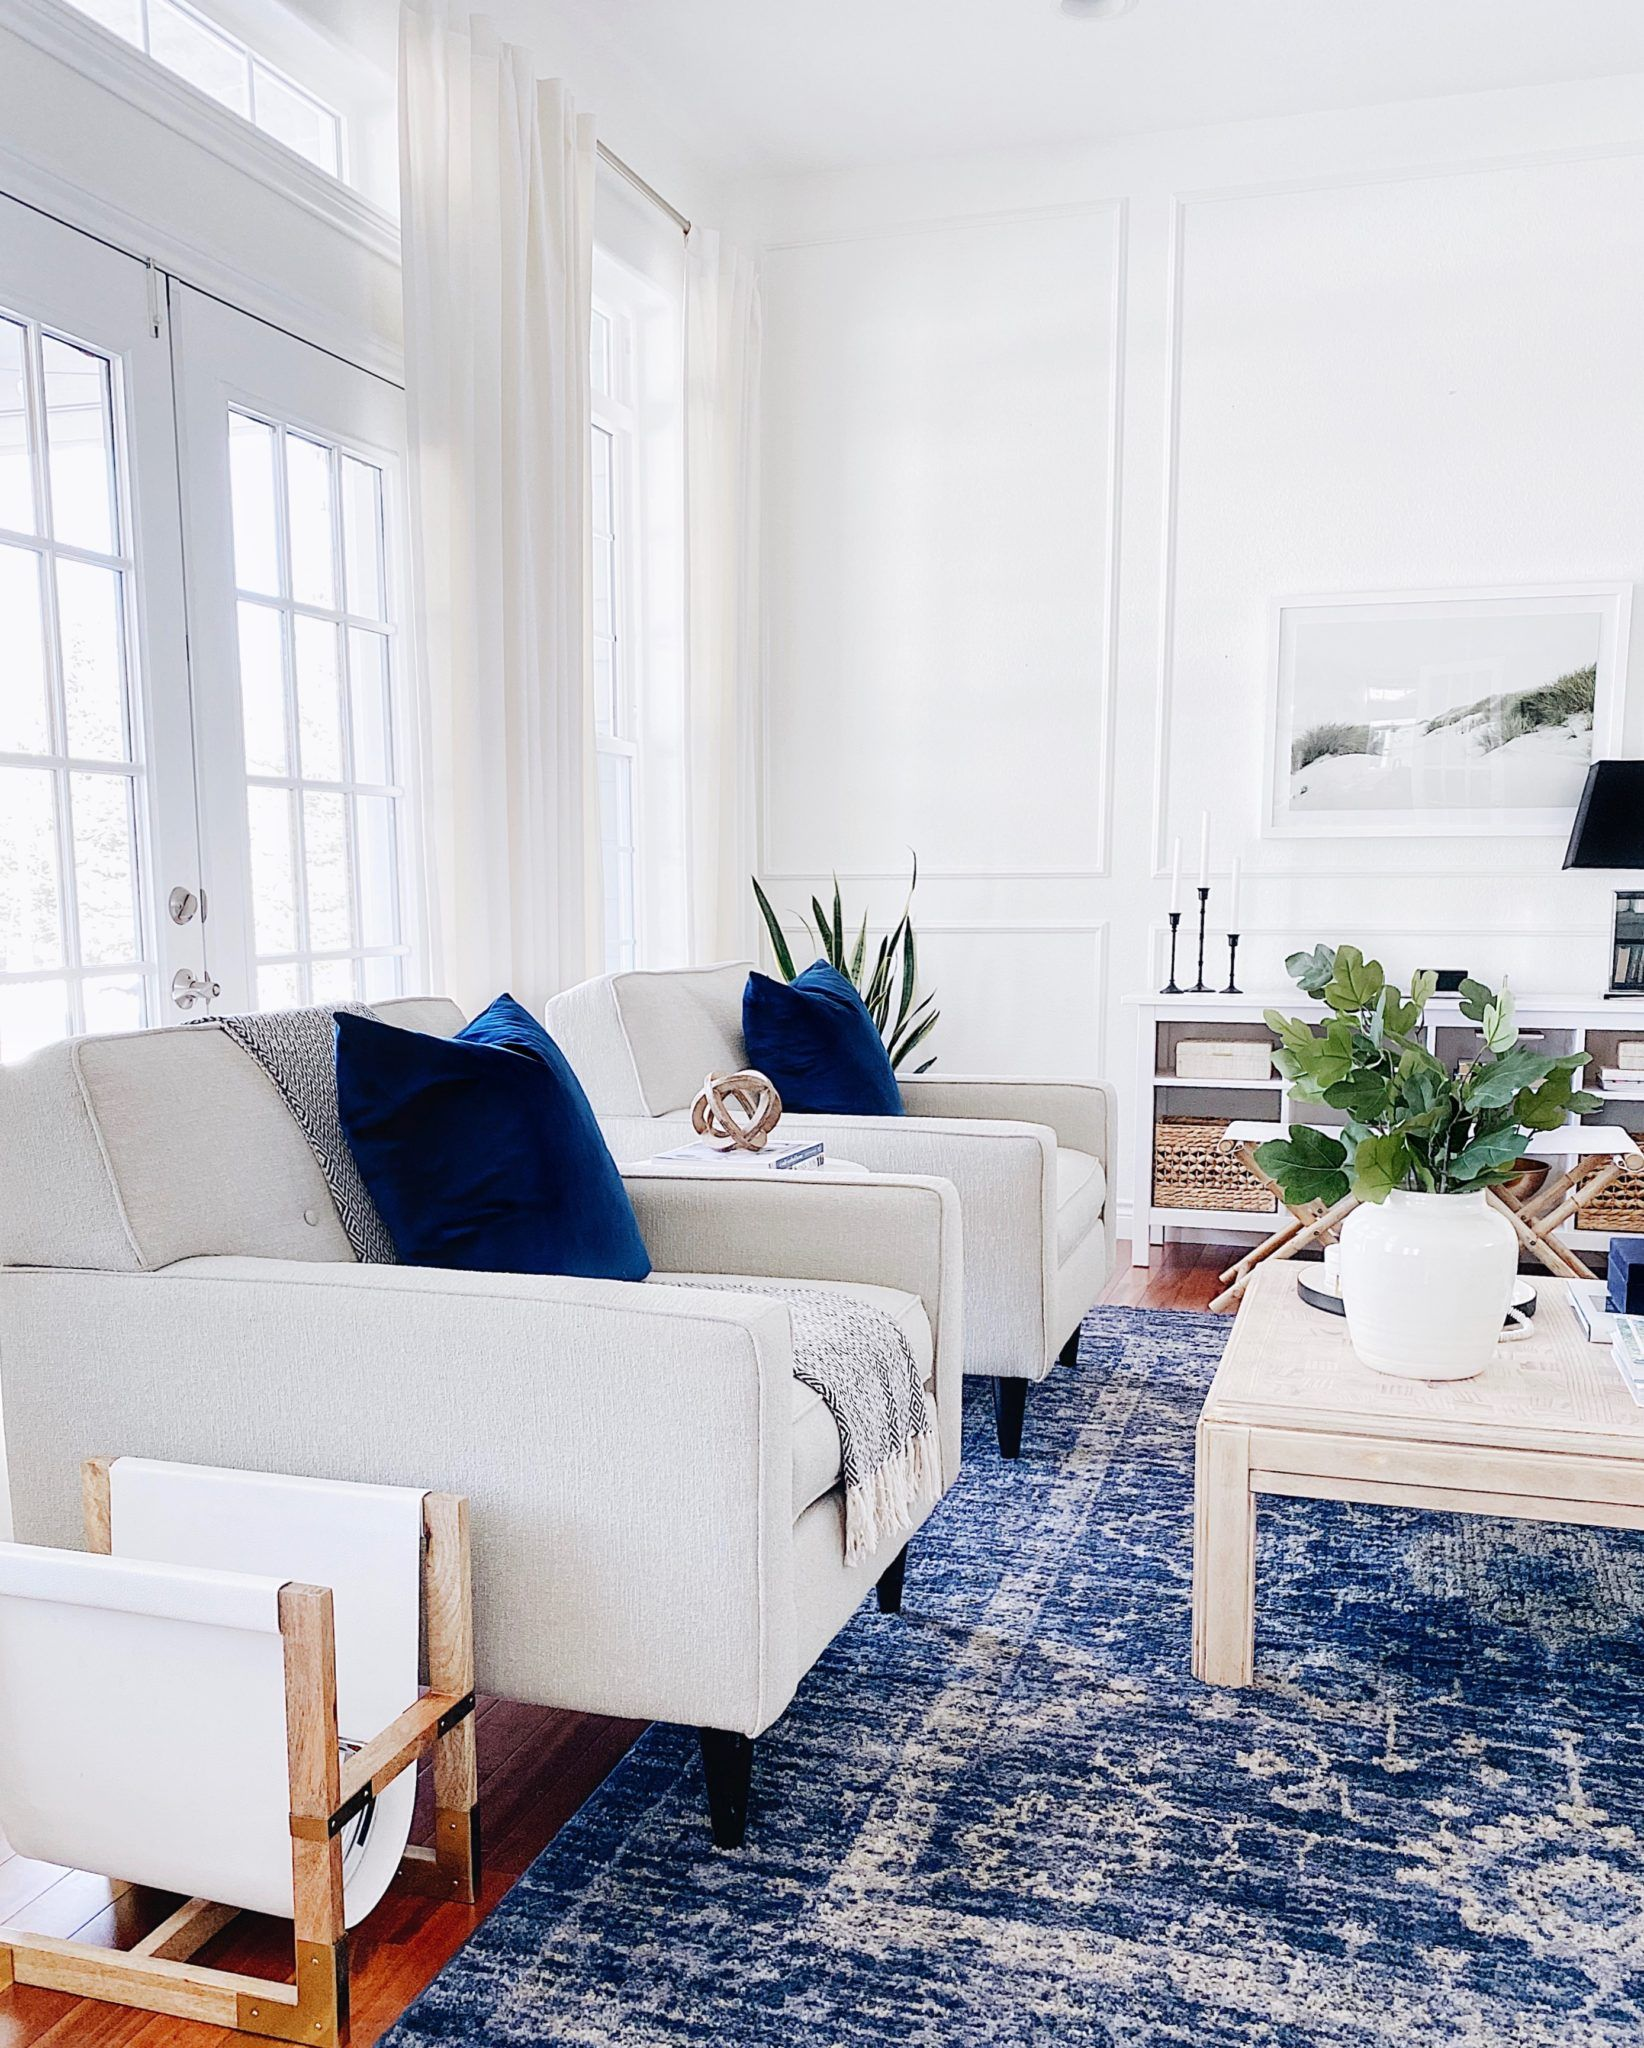 10 Easy Ways To Cozy Up Your Home Jane At Home In 2020 Living Room Decor Cozy Living Room Decor Neutral Living Room Scandinavian